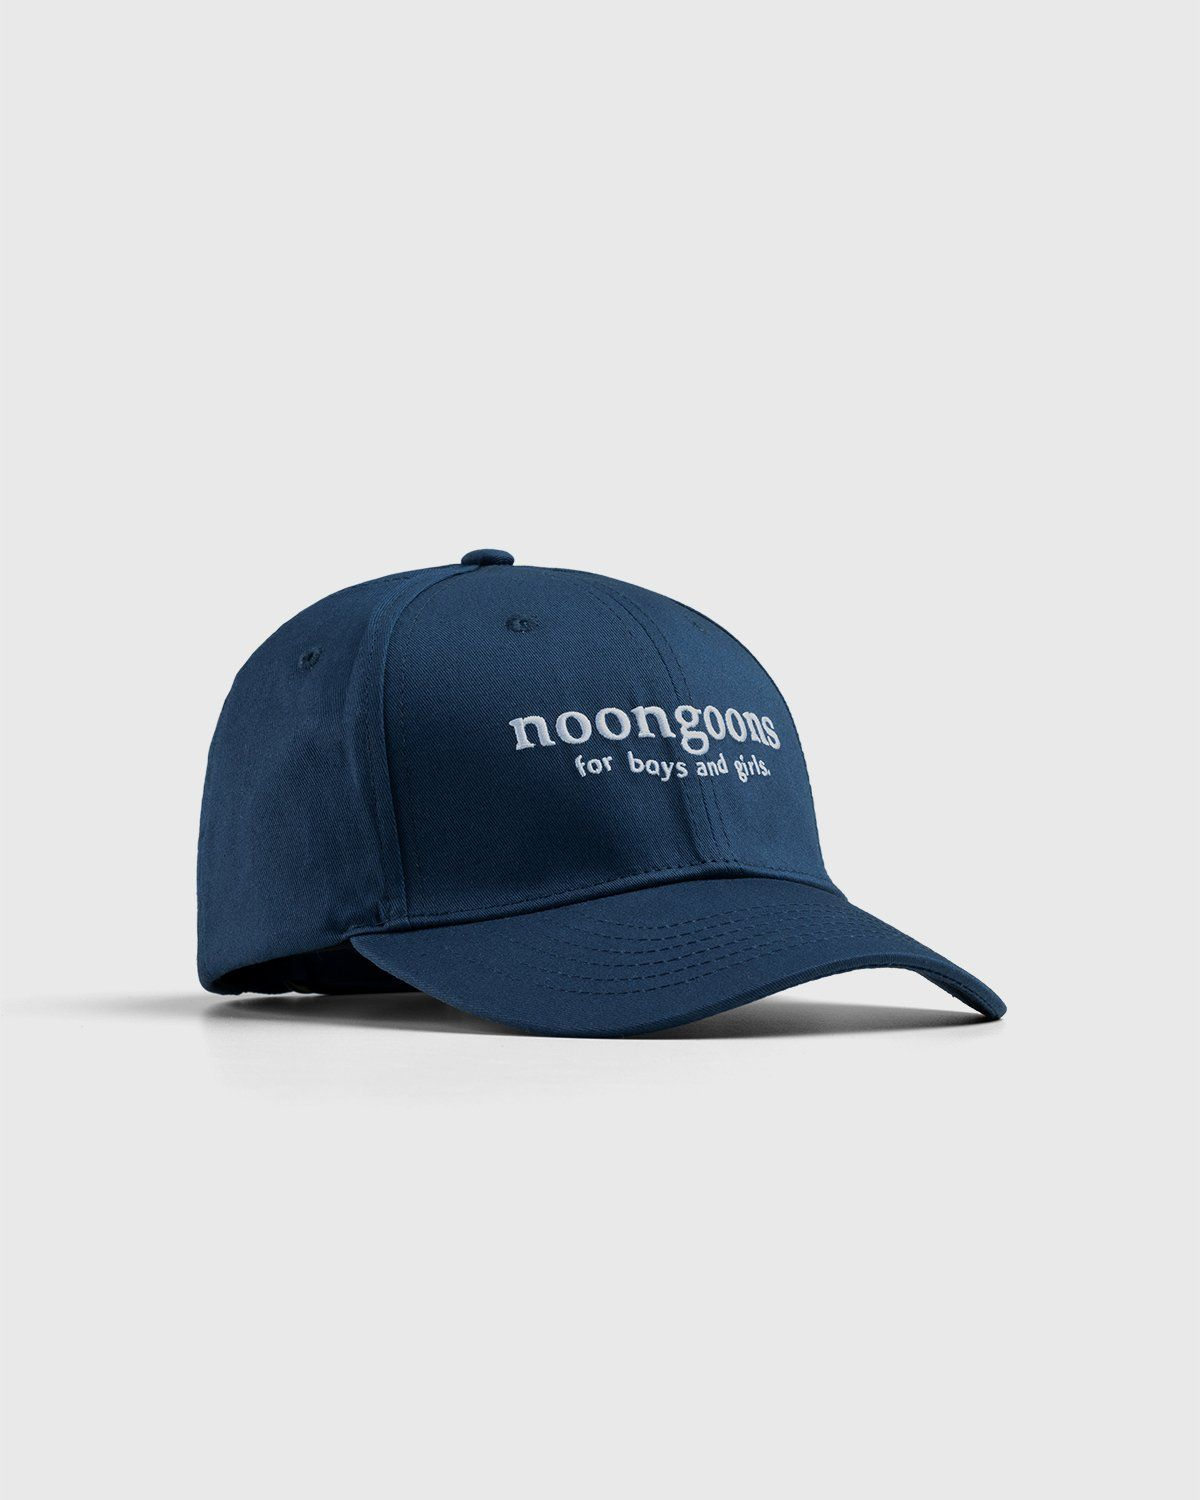 Noon Goons – Boys and Girls Hat Blue - Image 3